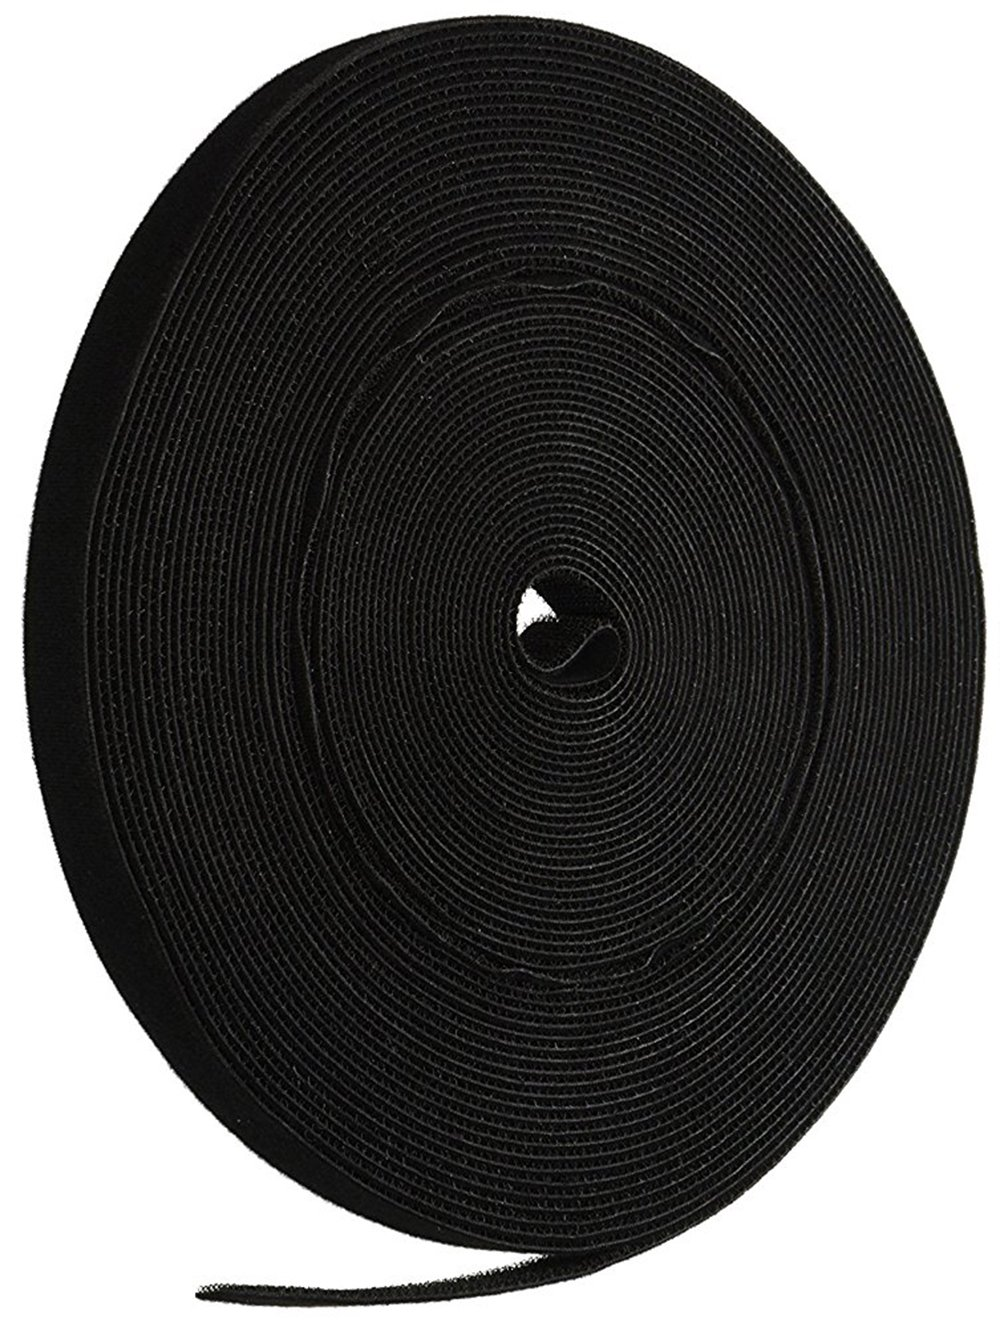 iMBAPrice Cable Fastening Tape - 0.75 inch Single Wrap Hook & Loop (75 feet) 25 Yards/Roll - Black